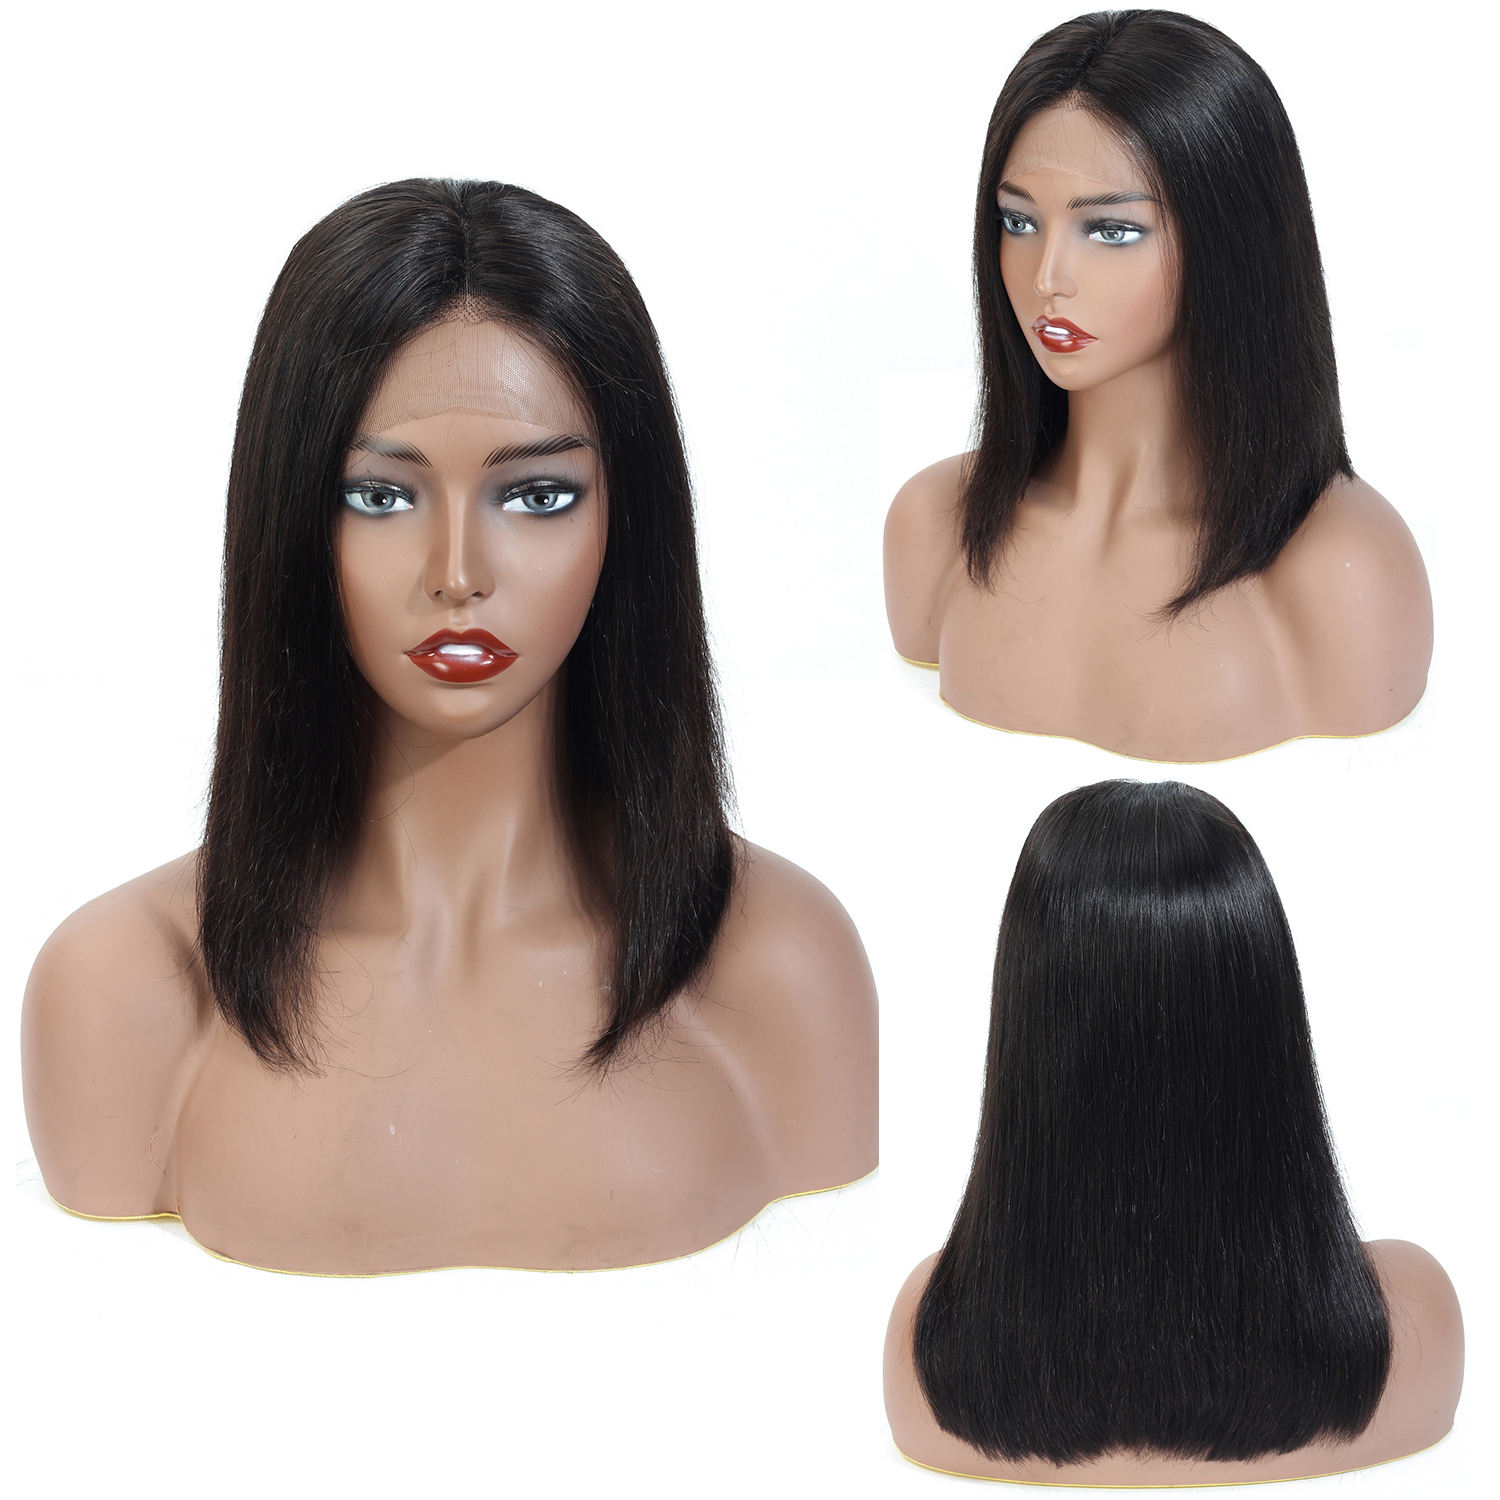 wholesale Full lace wigs 100% mink brazilian hair hd lace front wigs virgin cuticle aligned remy human hair wigs for women